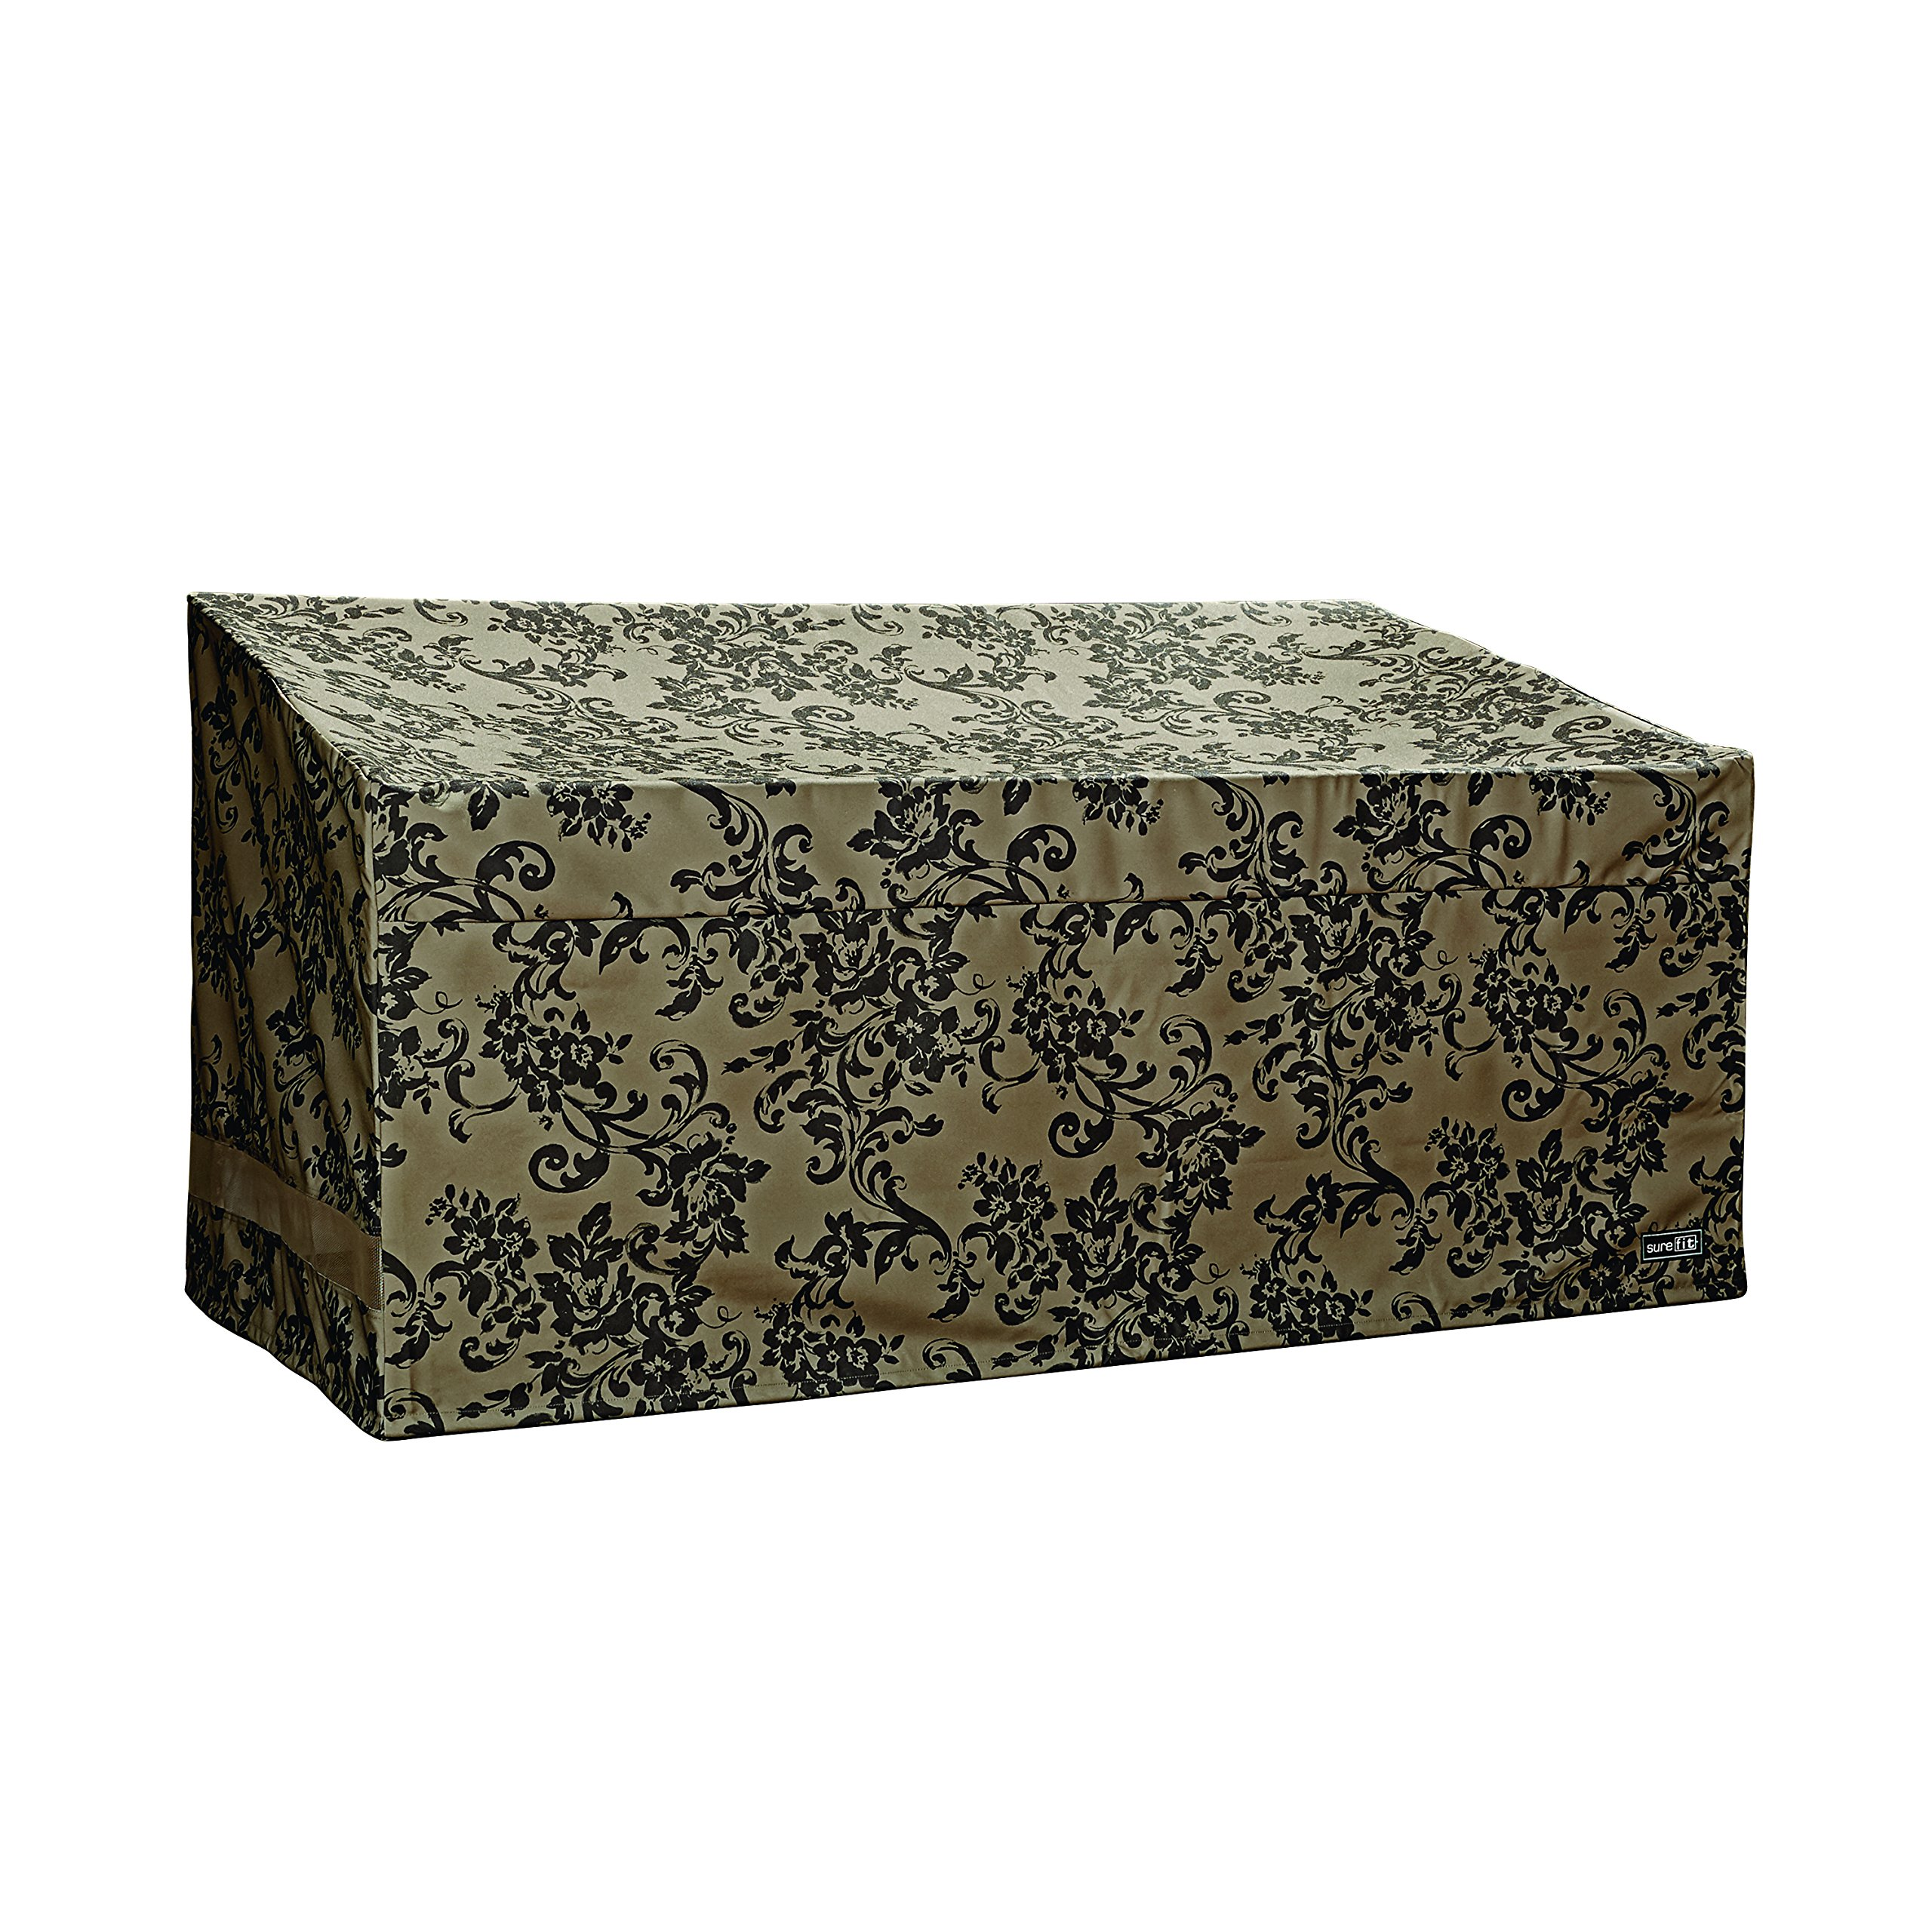 Patio Armor Loveseat/Bench Cover With Pu Coating, Damask Print